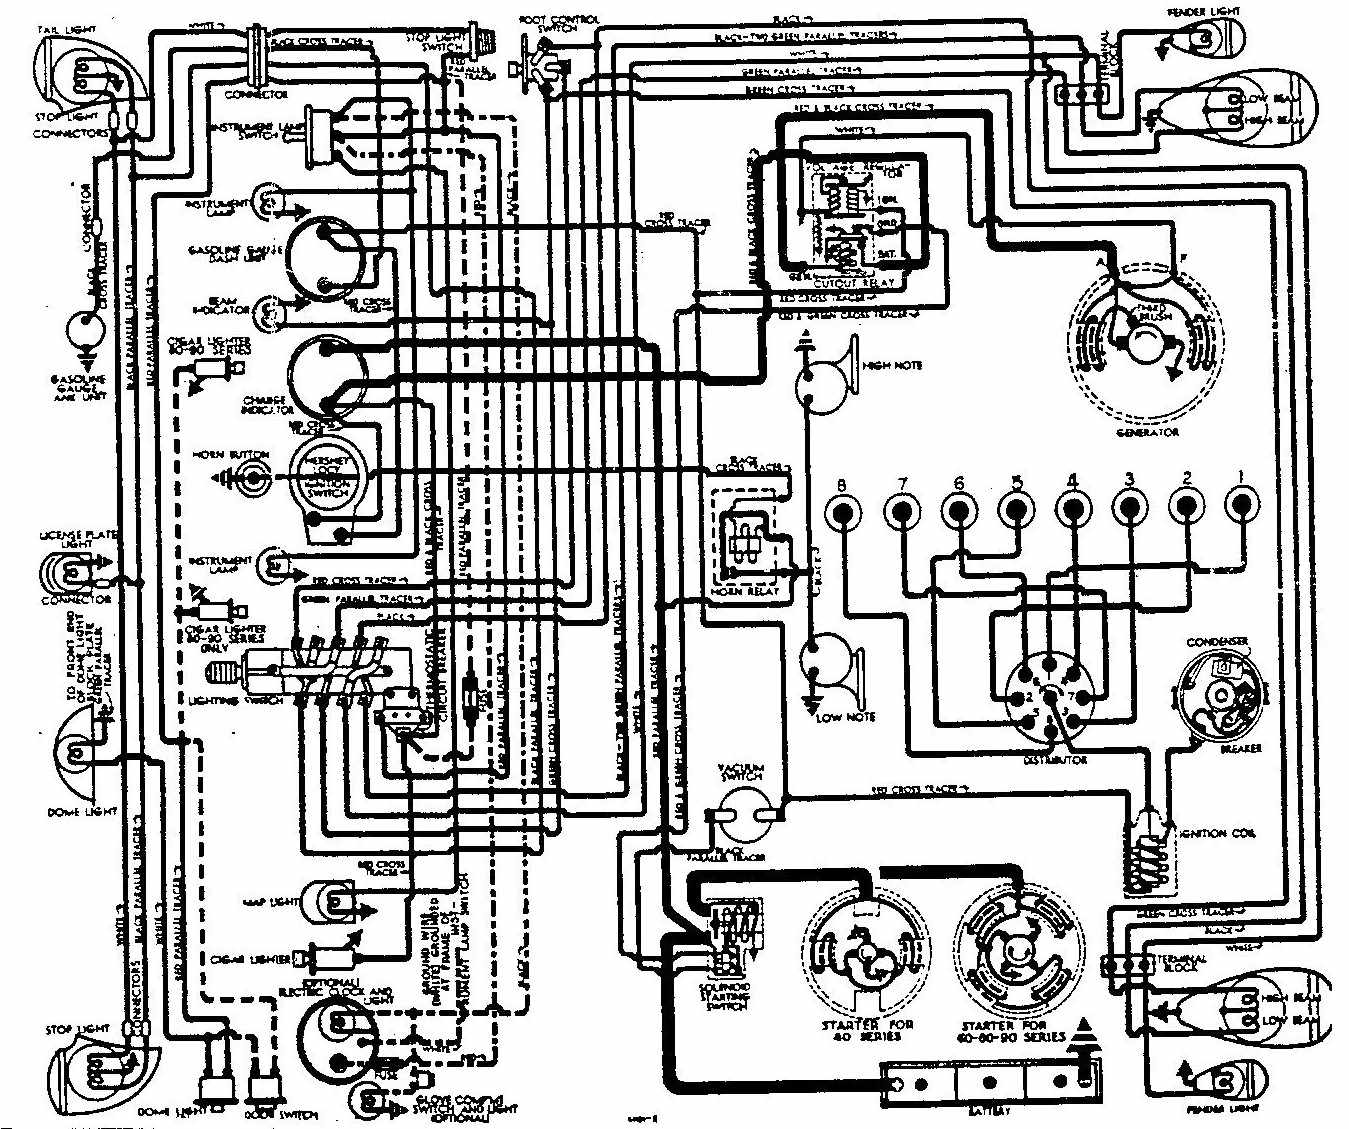 1997 Buick Lesabre Radio Wiring Diagram 3 Phase Motor Star Delta 95 Ignition Get Free